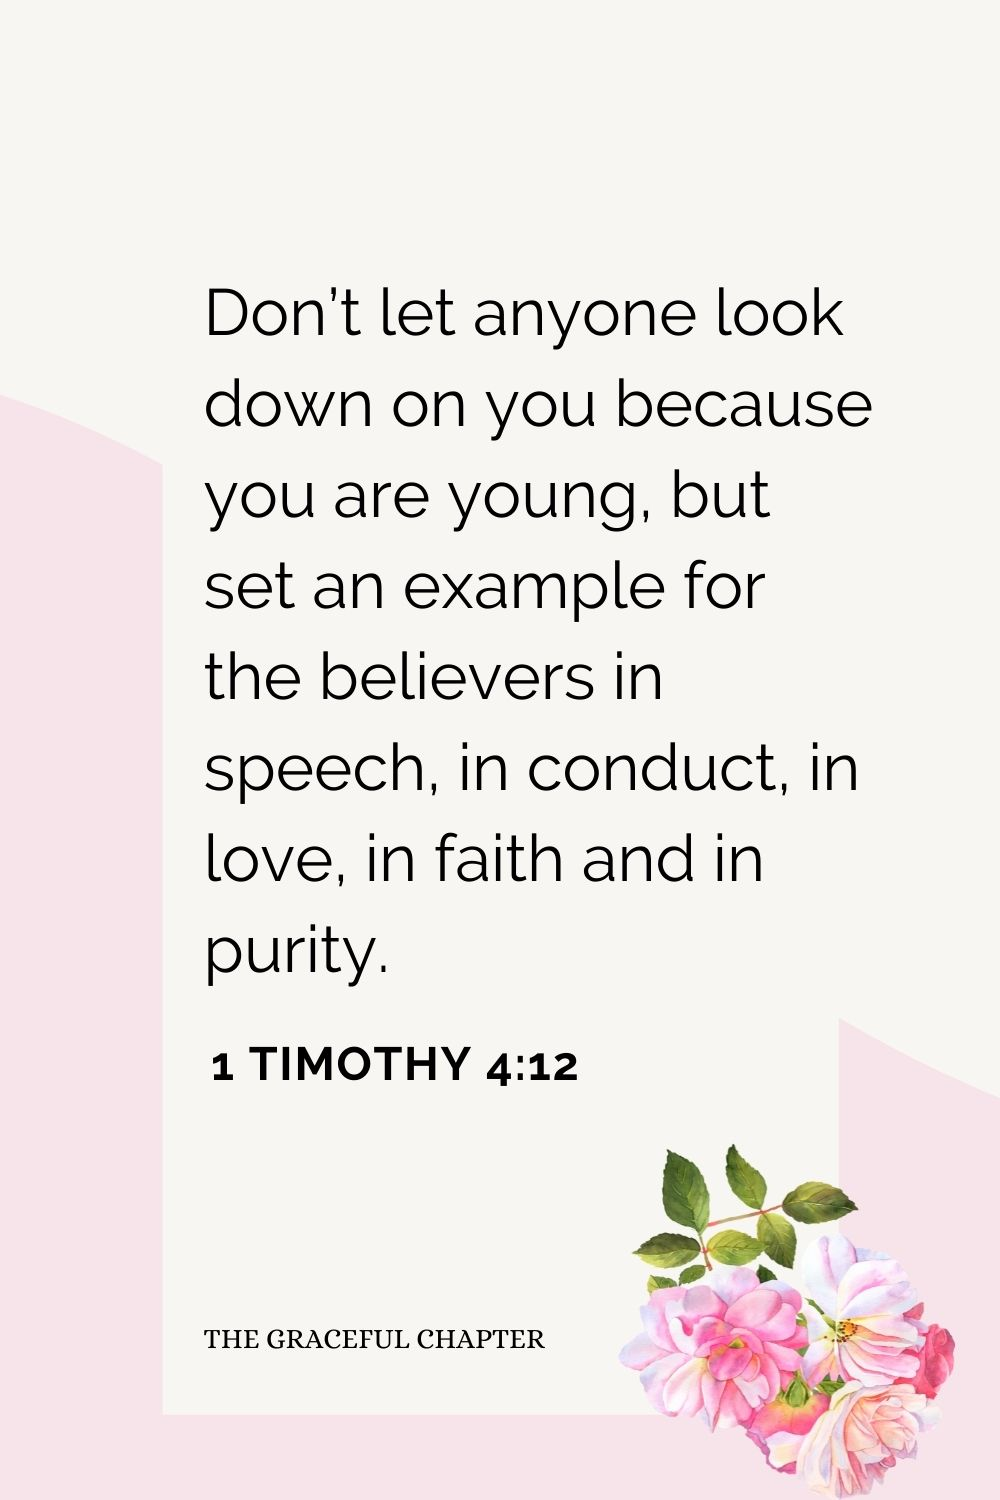 Don't let anyone look down on you because you are young, but set an example for the believers in speech, in conduct, in love, in faith and in purity. 1 Timothy 4:12